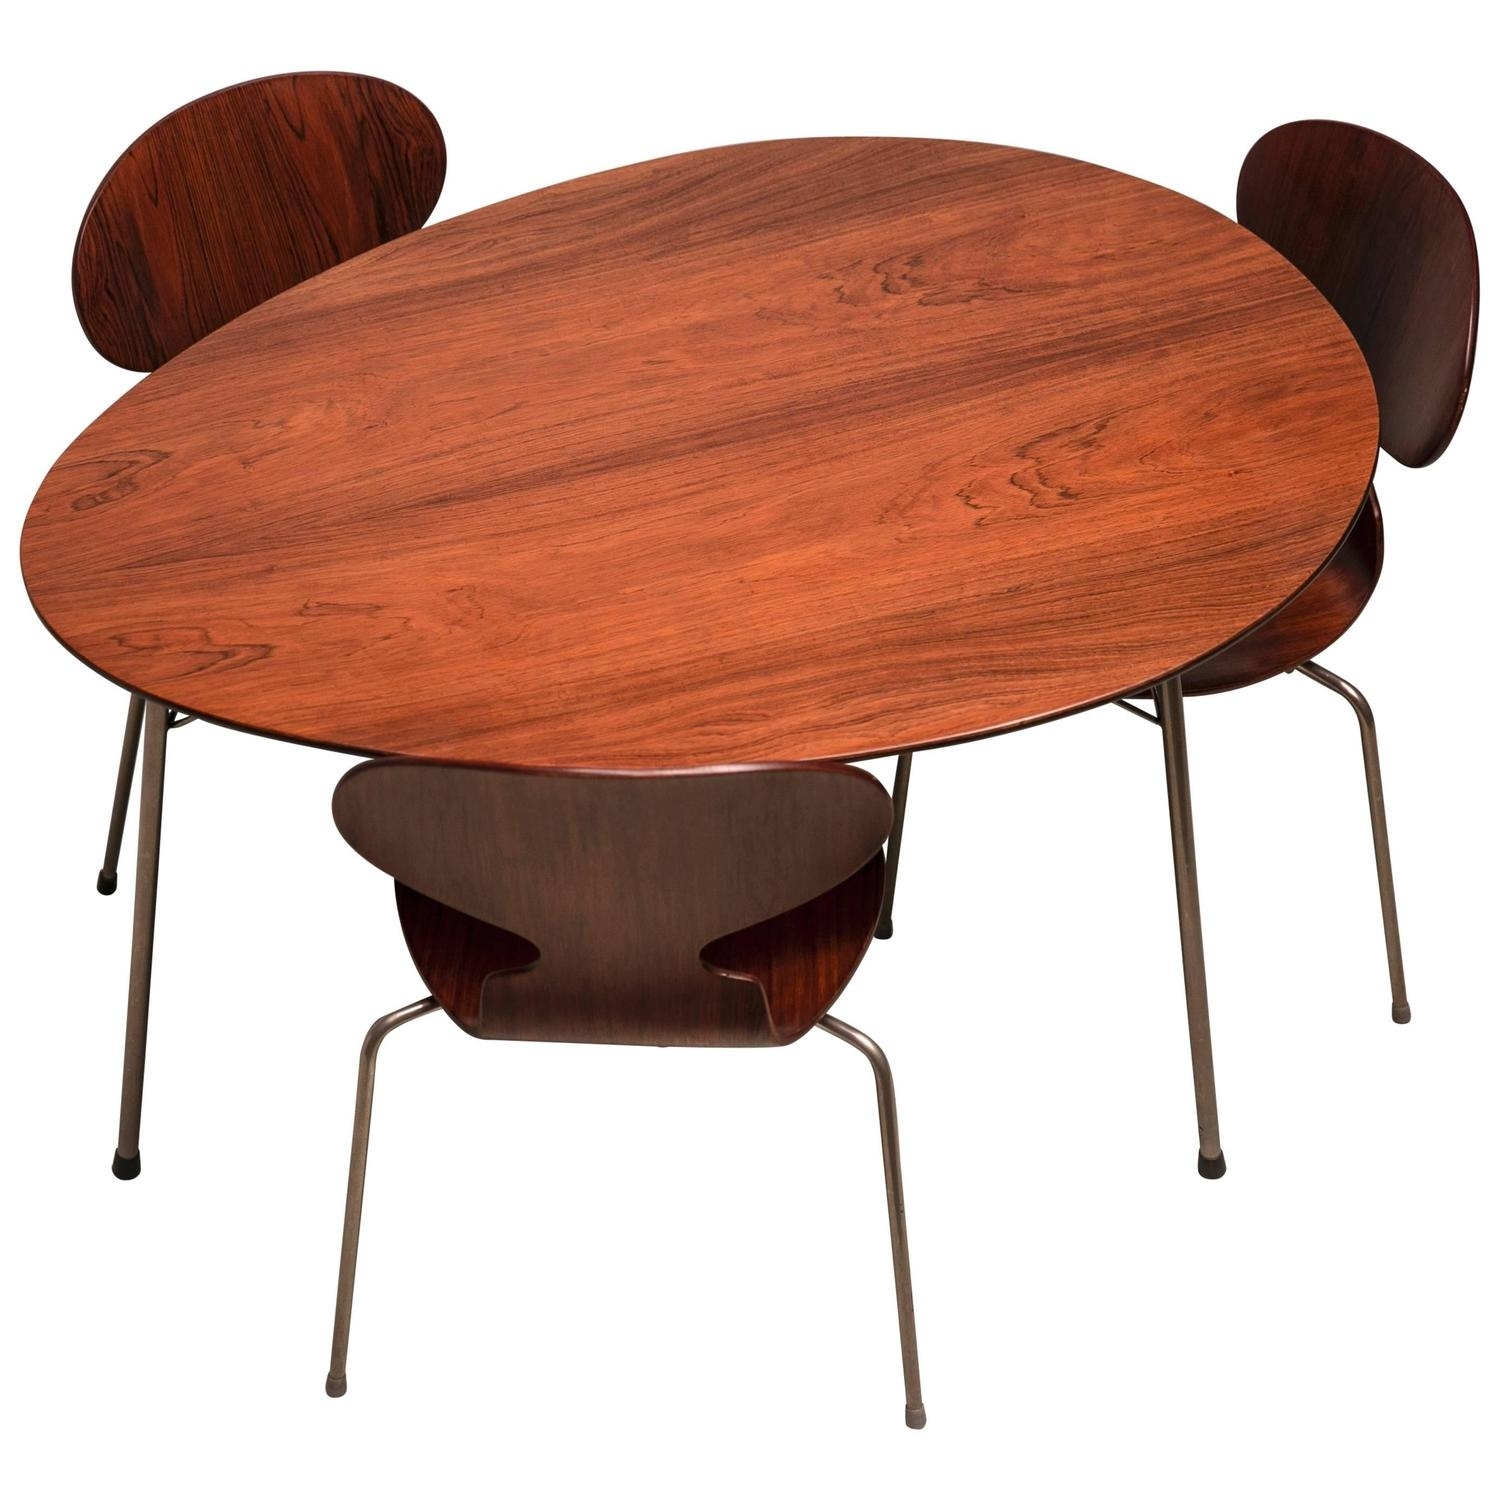 Exceptional Early Brazilian Rosewood Egg Table And Ant Chairs Throughout Mid Century Modern Egg Tables (View 7 of 30)